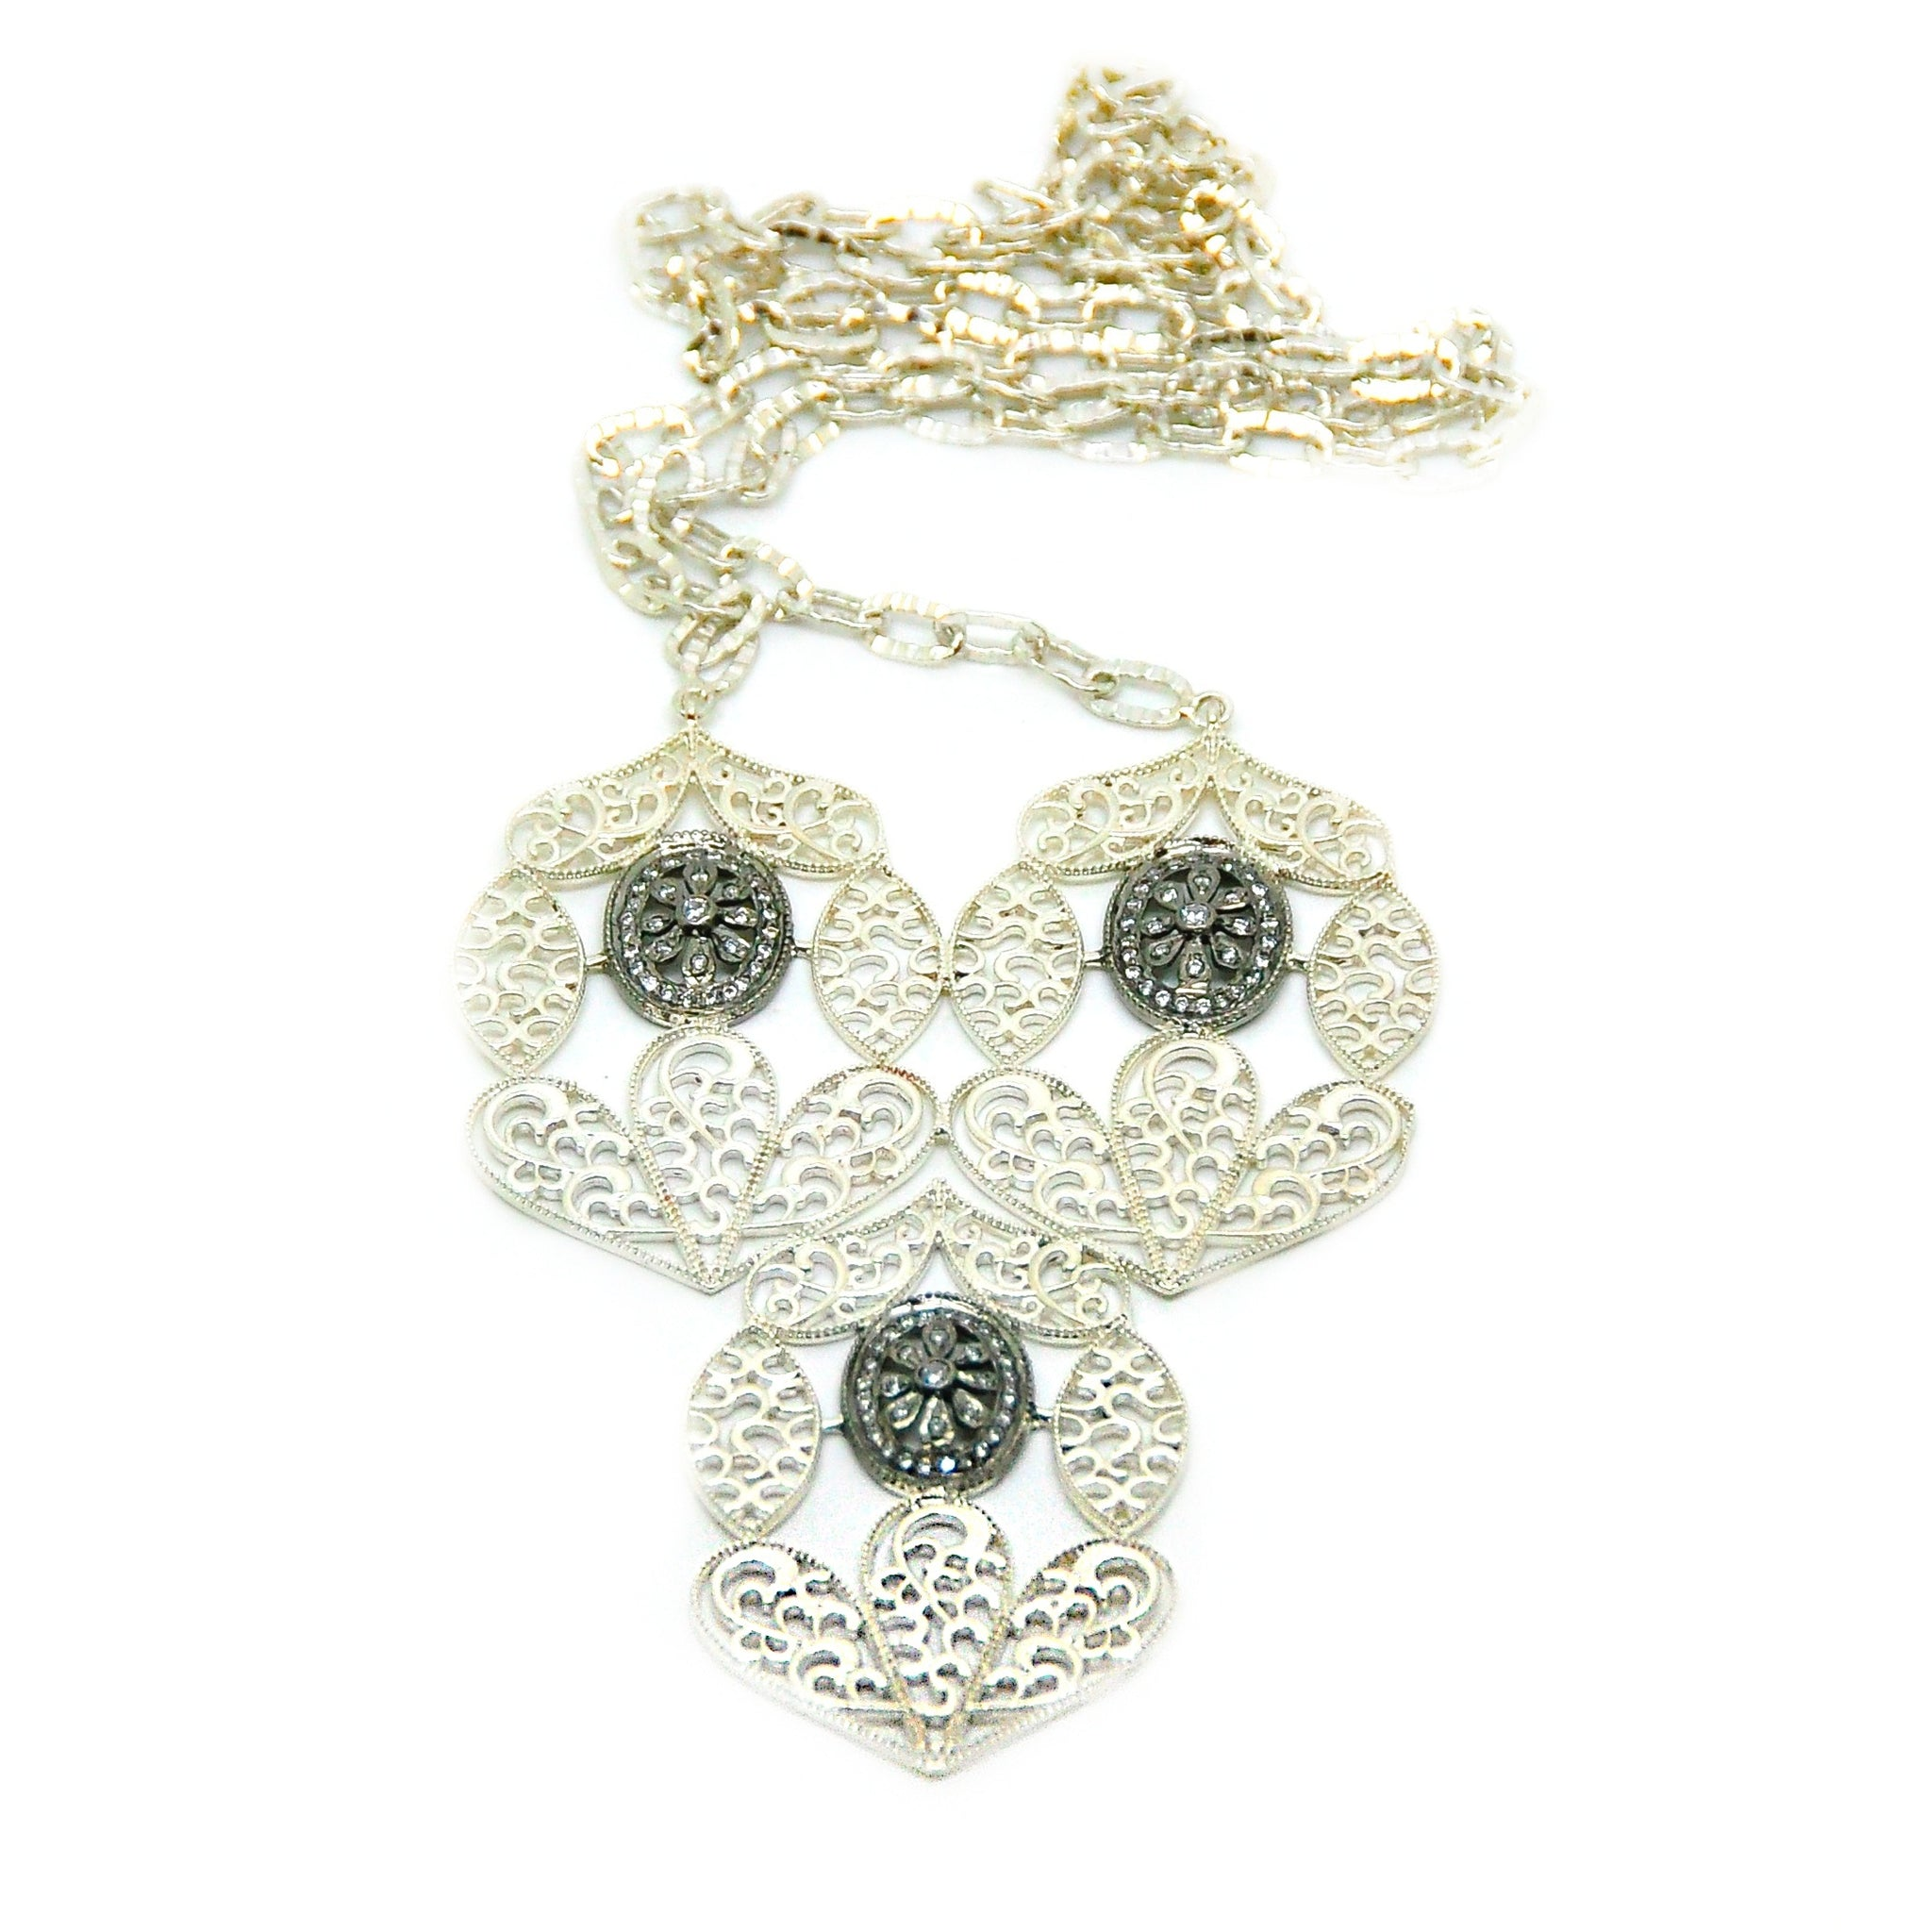 NEW large filigree necklace 2